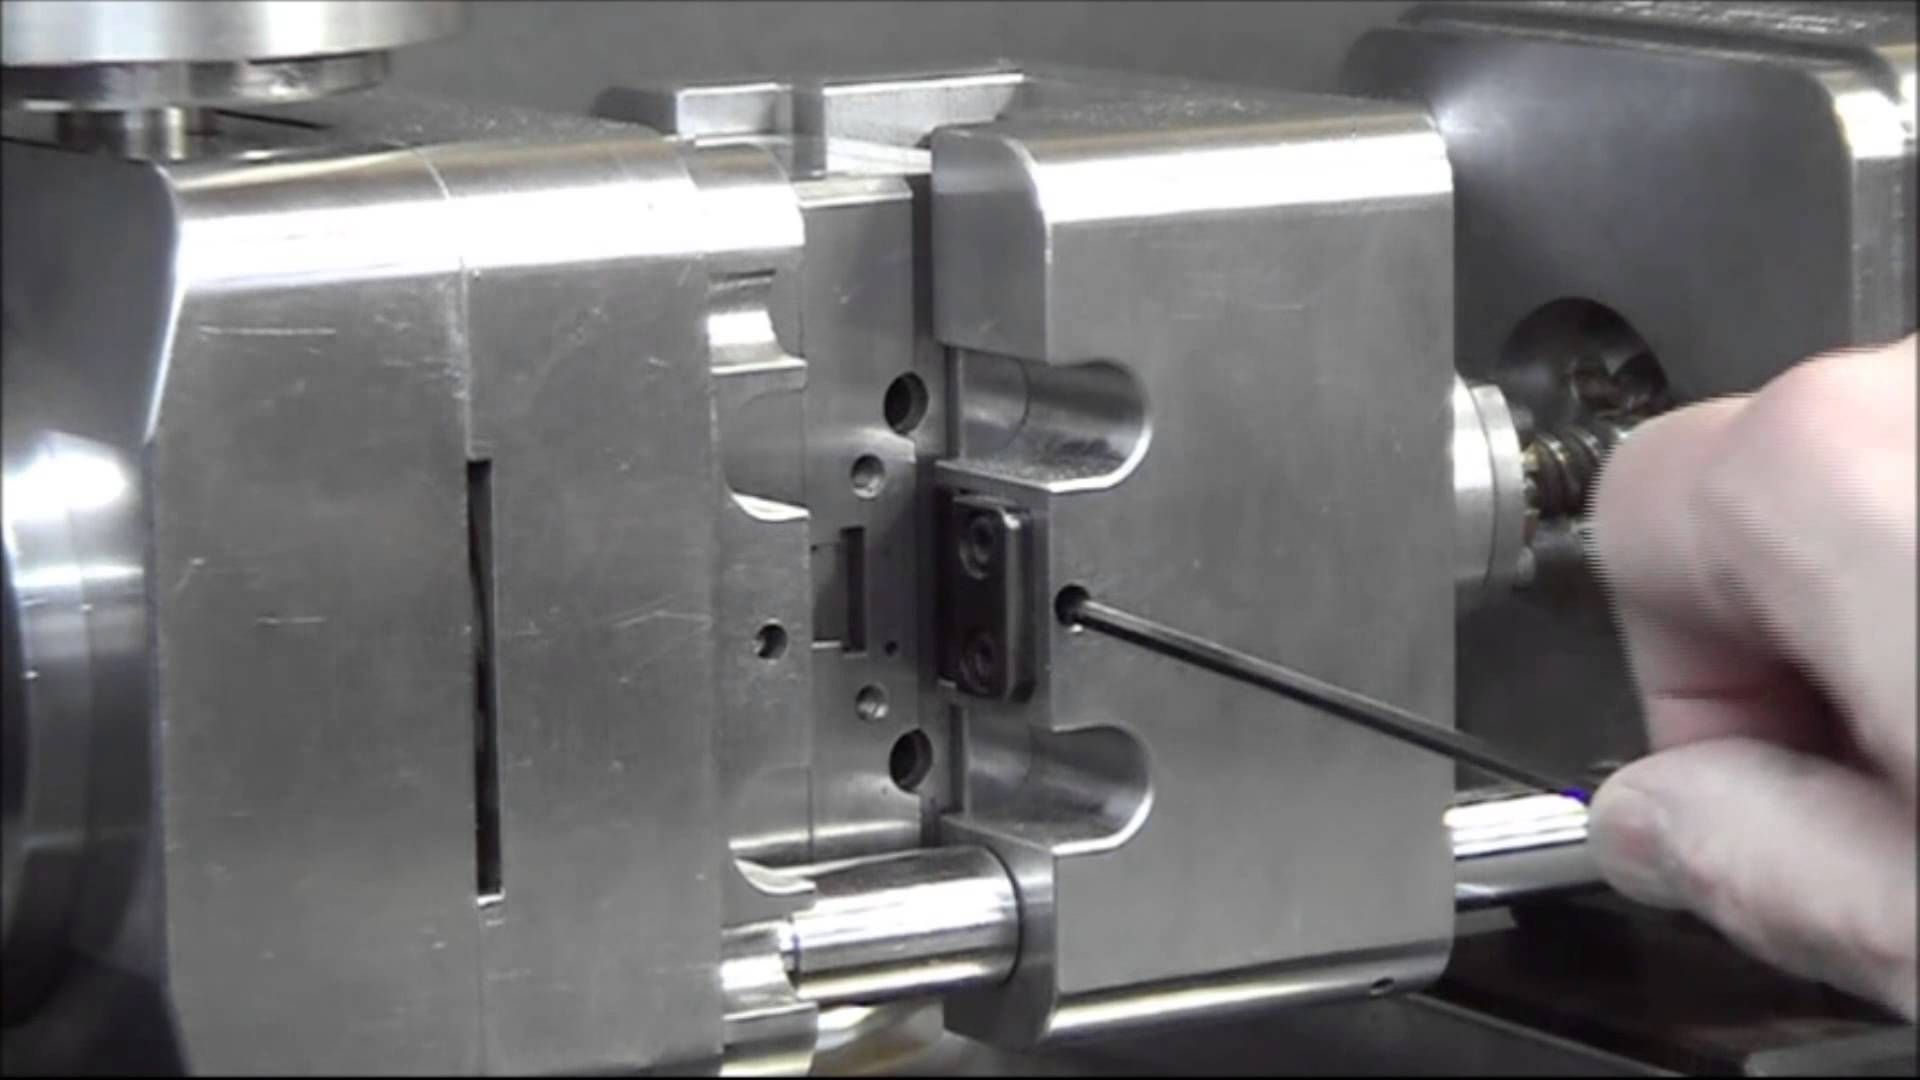 C,Mobile Micro Injection Molding Machine | KEEP CALM AND DIY